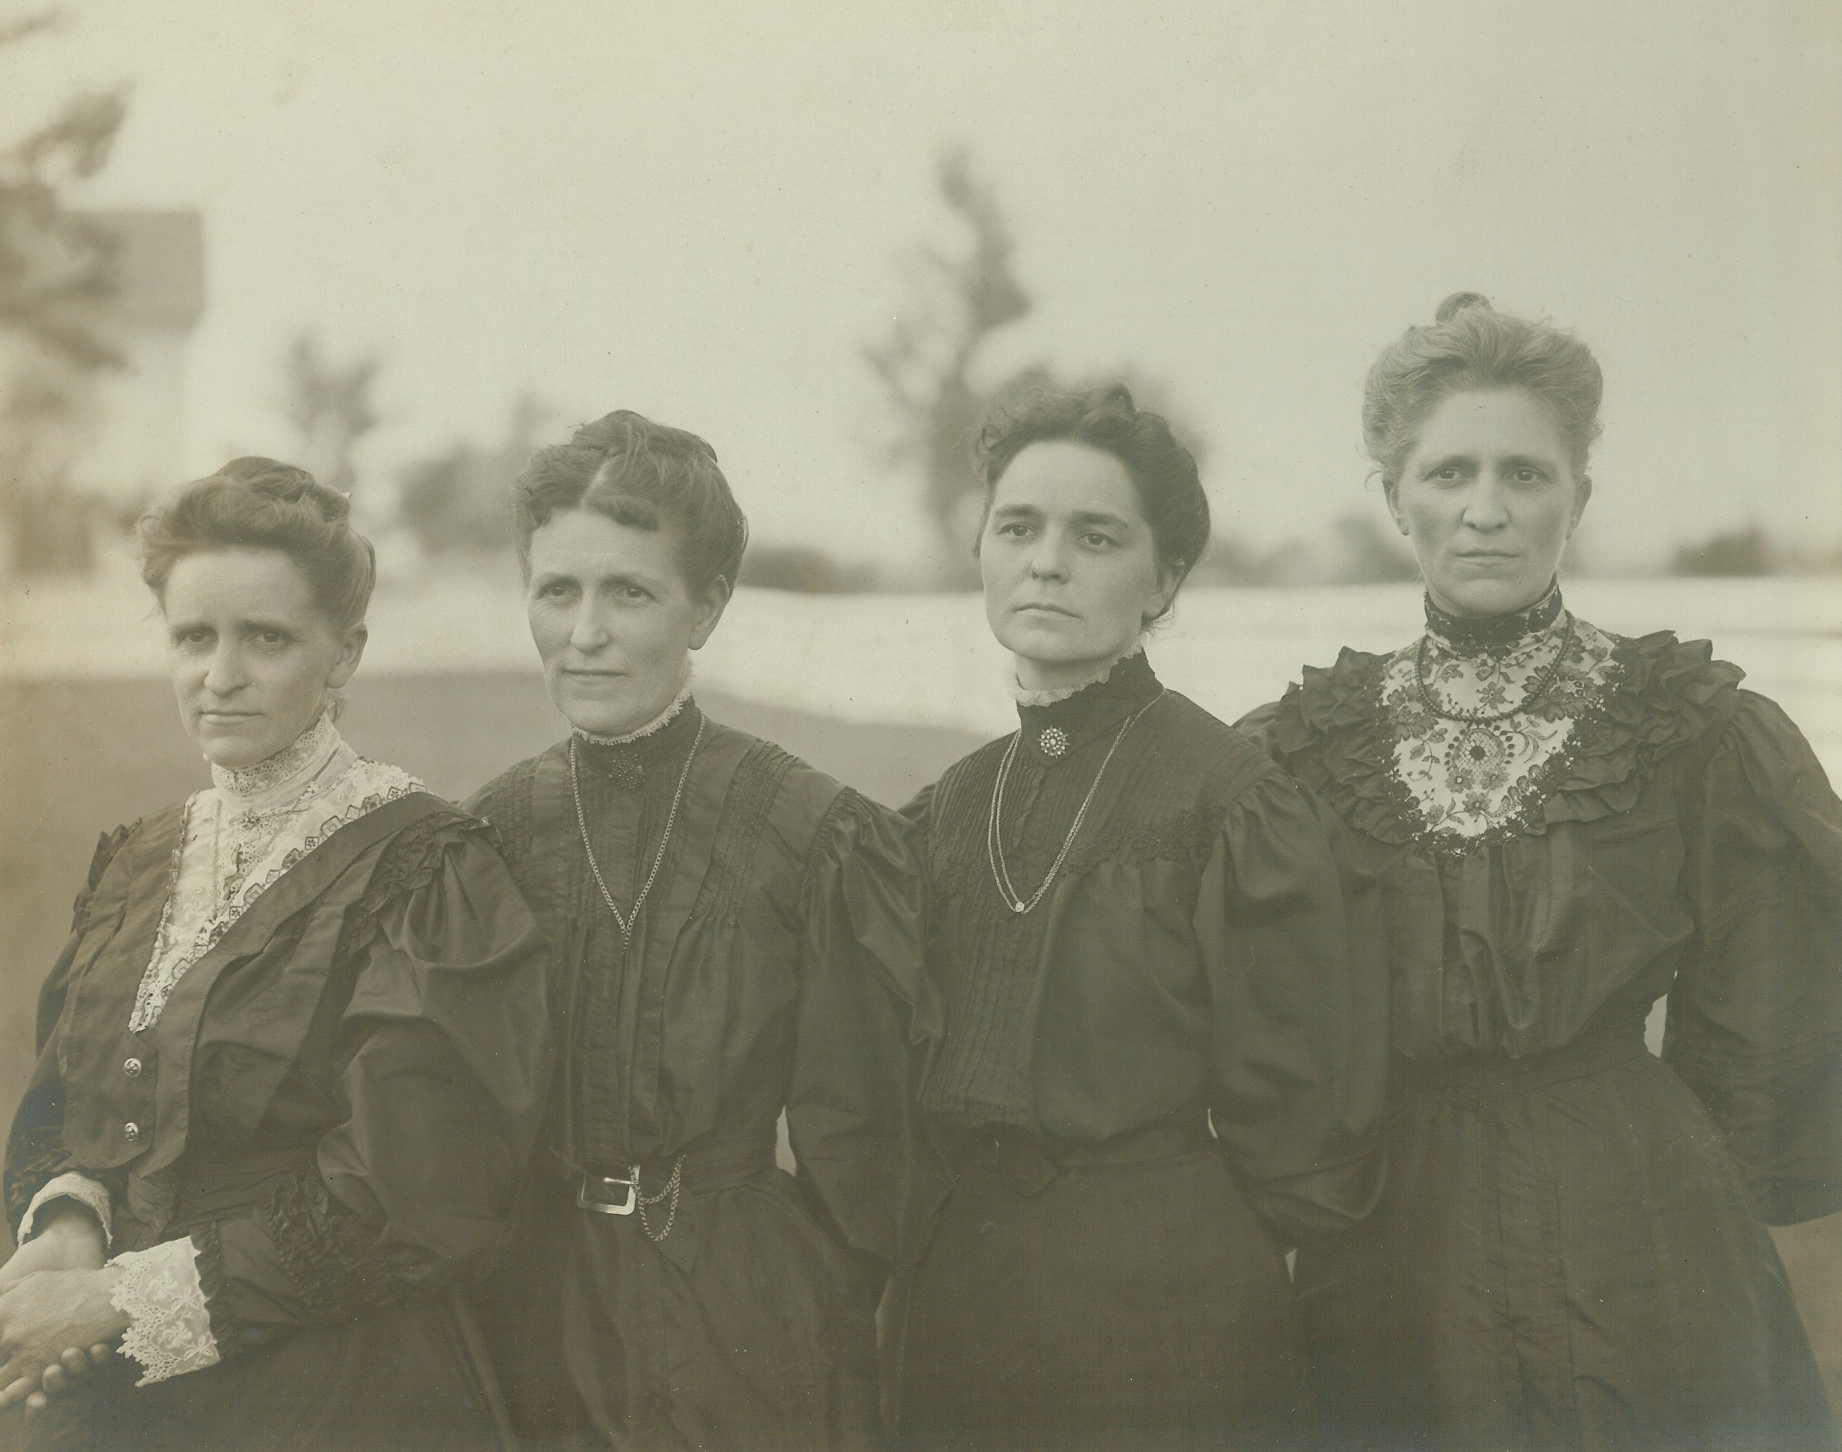 Antique photo of Mary Hains Peterson, Sarepta Hains Short, Hattie Hains Carpenter and Mattie Hains Jefferson